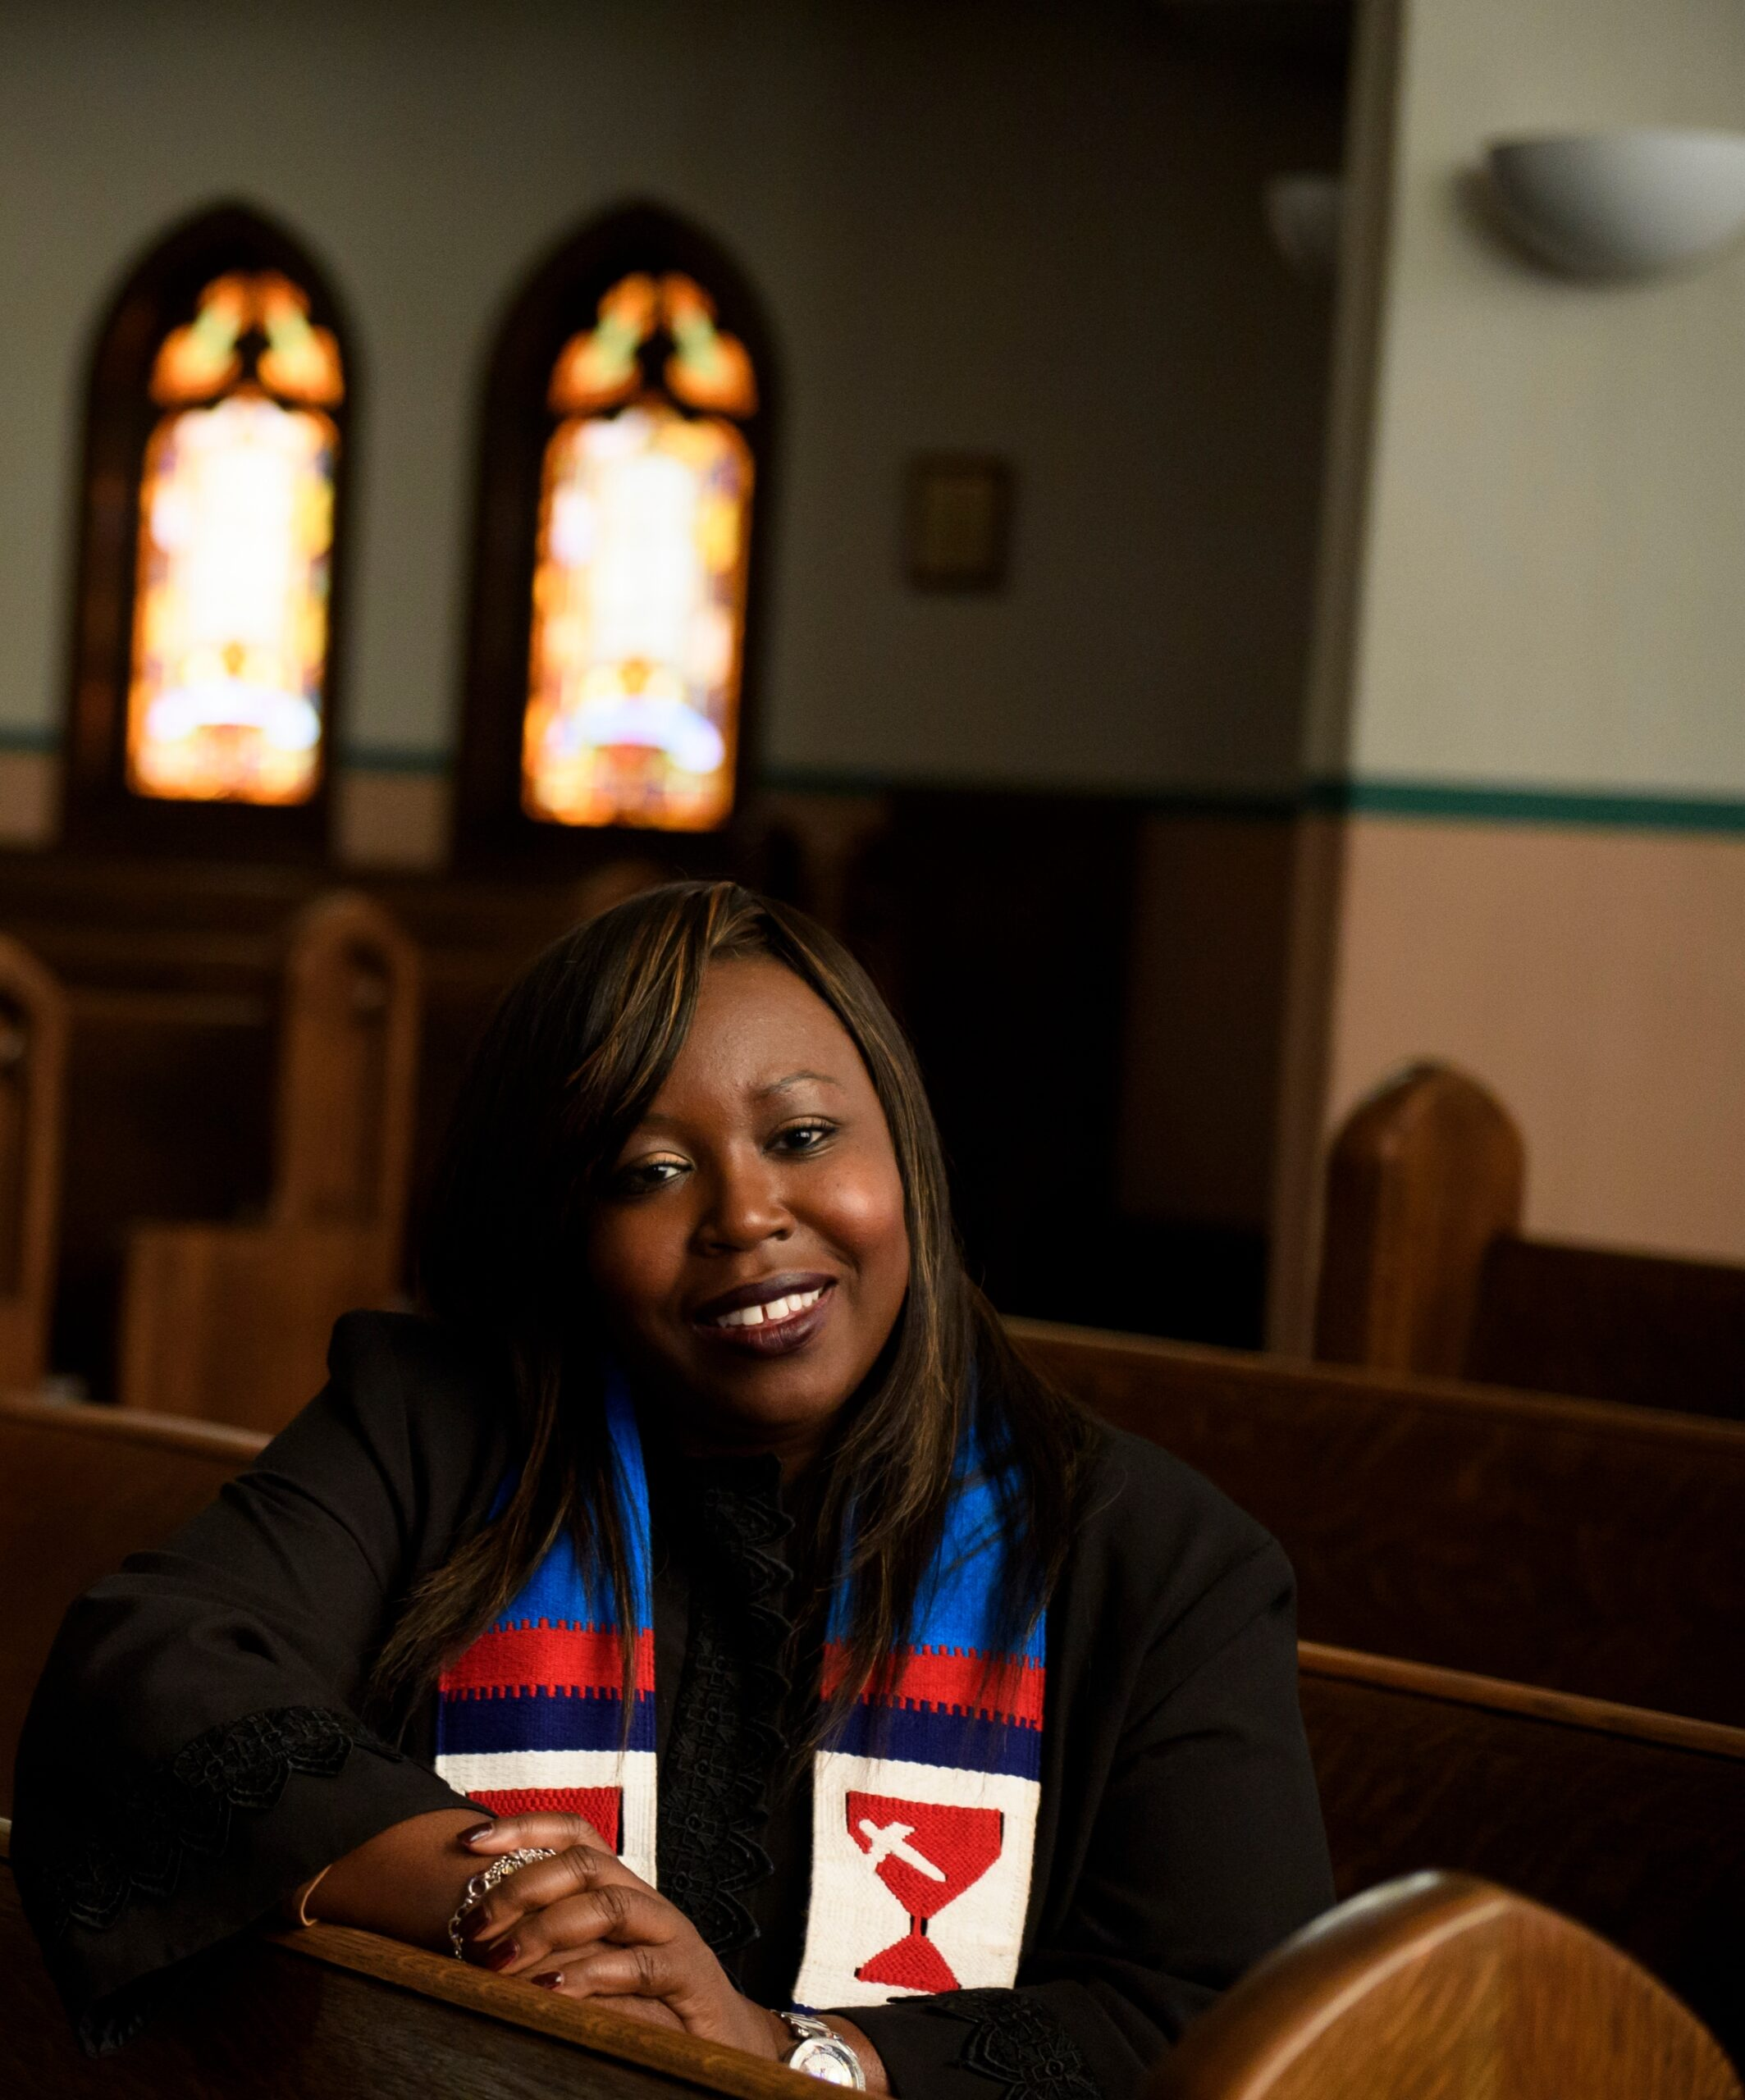 Cherisna smiles at the camera while sitting in church pews